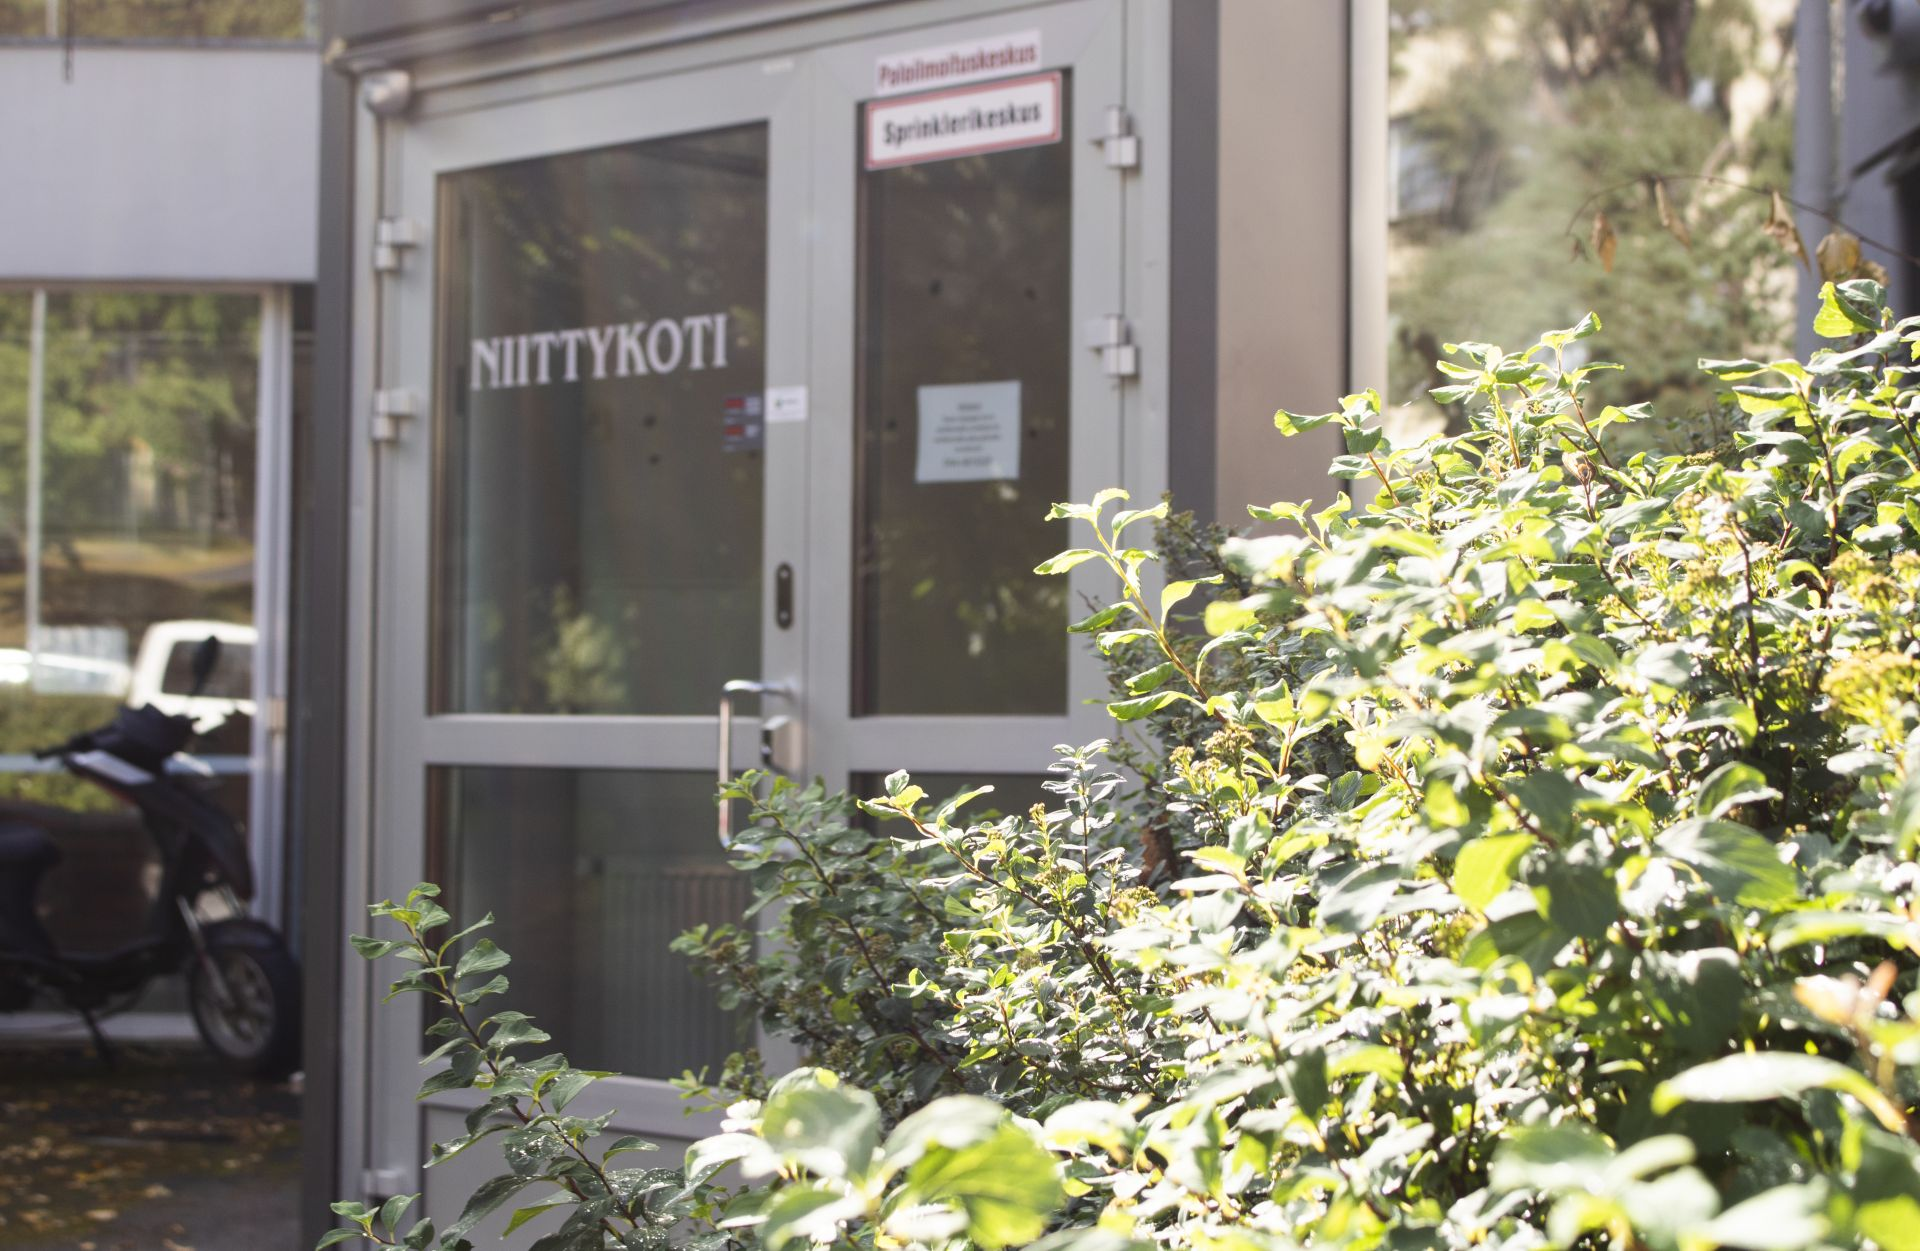 Niittykoti from the outside